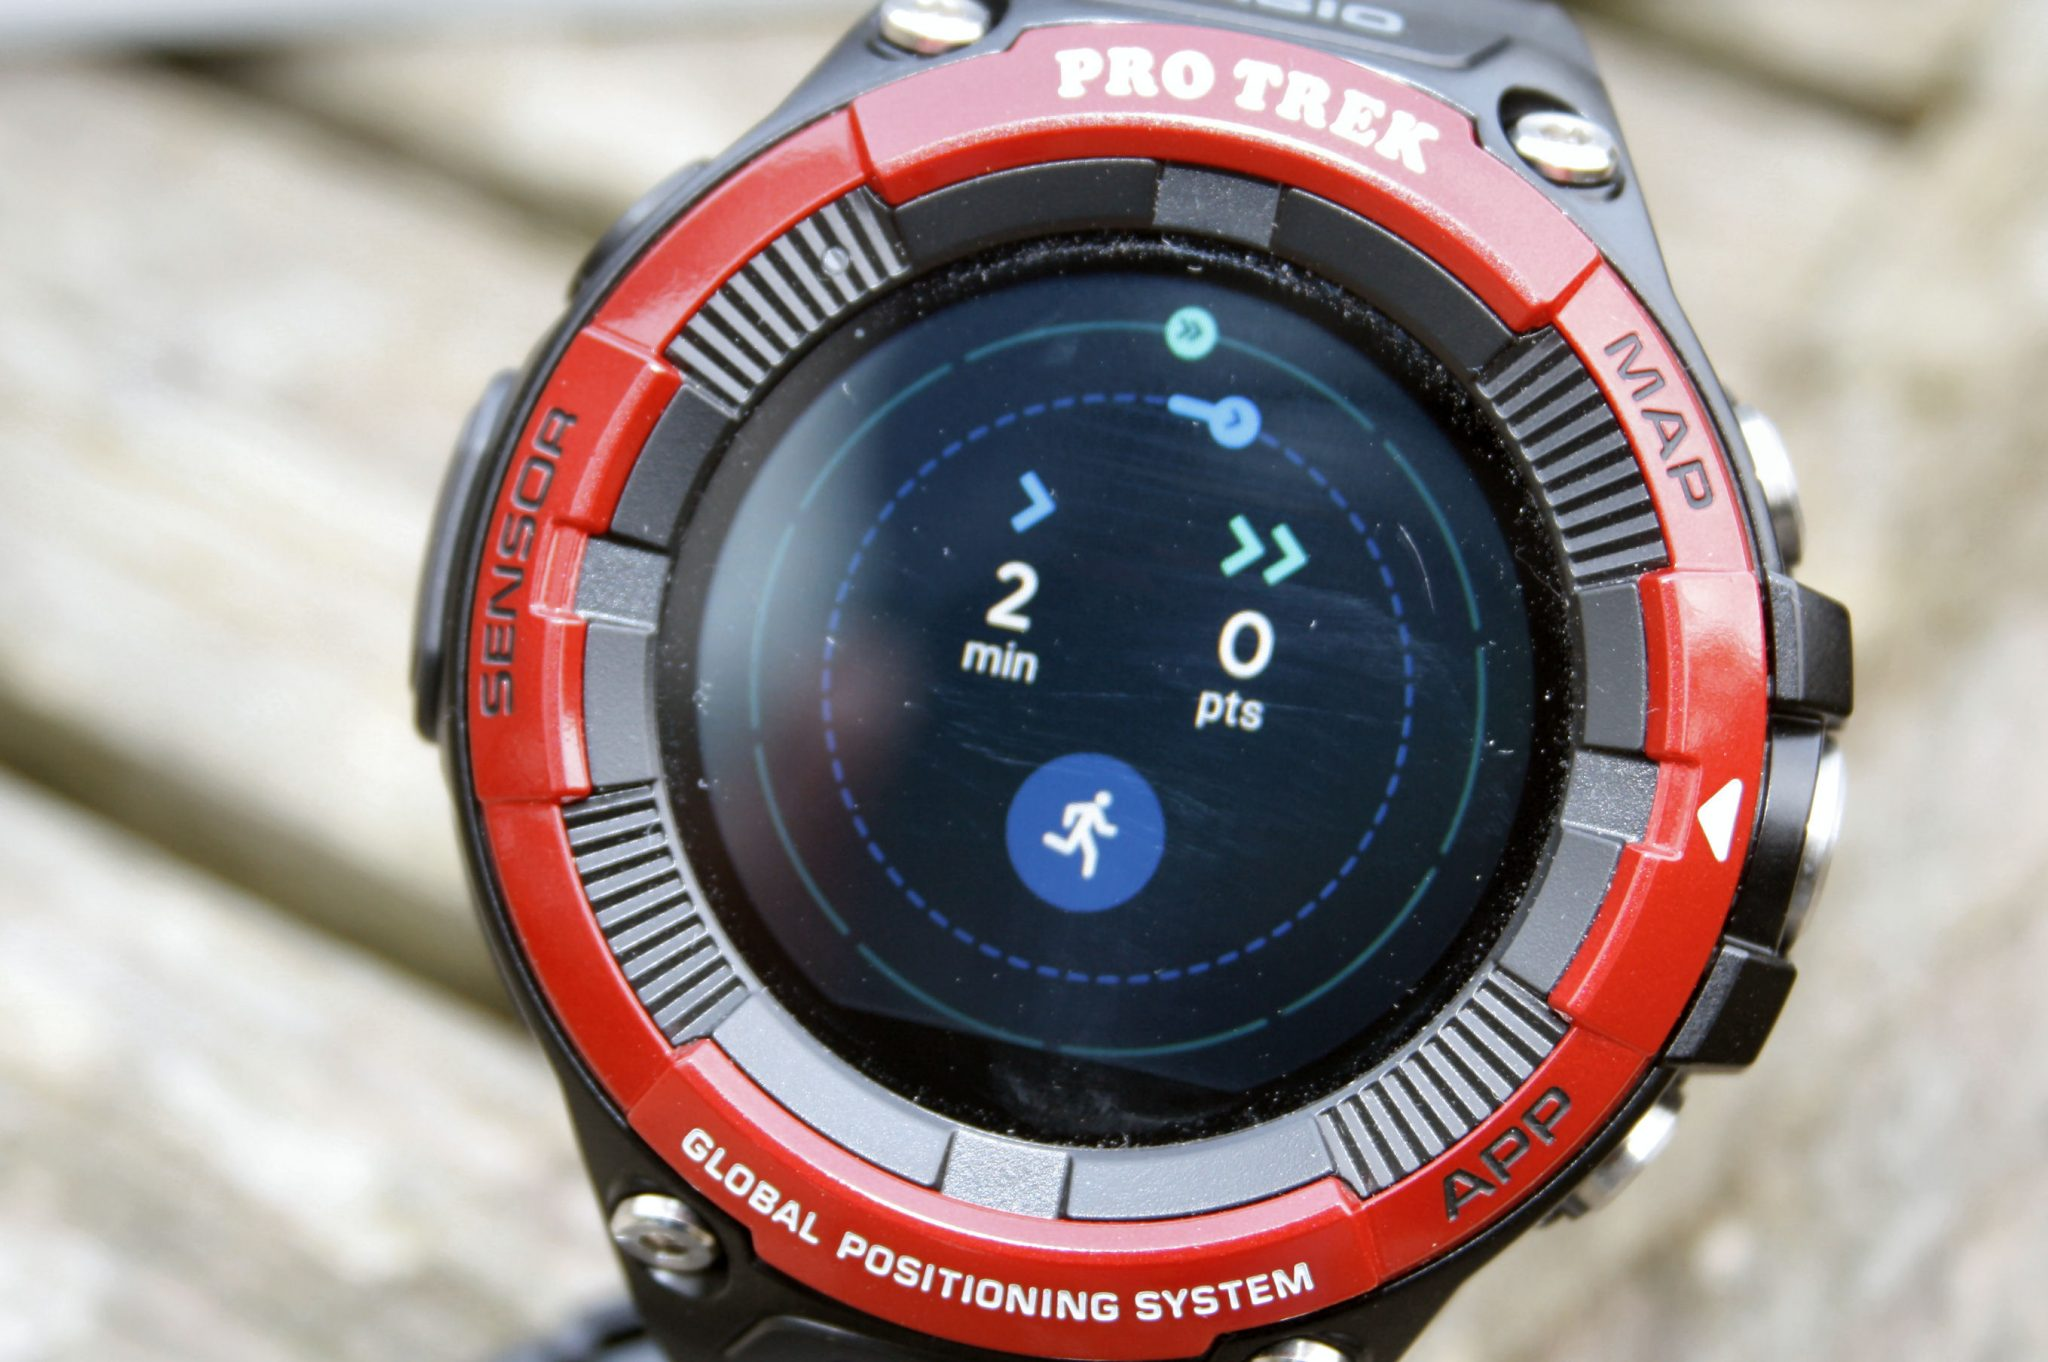 Casio WSD-F21 Human Resources Testimonial Pro Expedition Smart